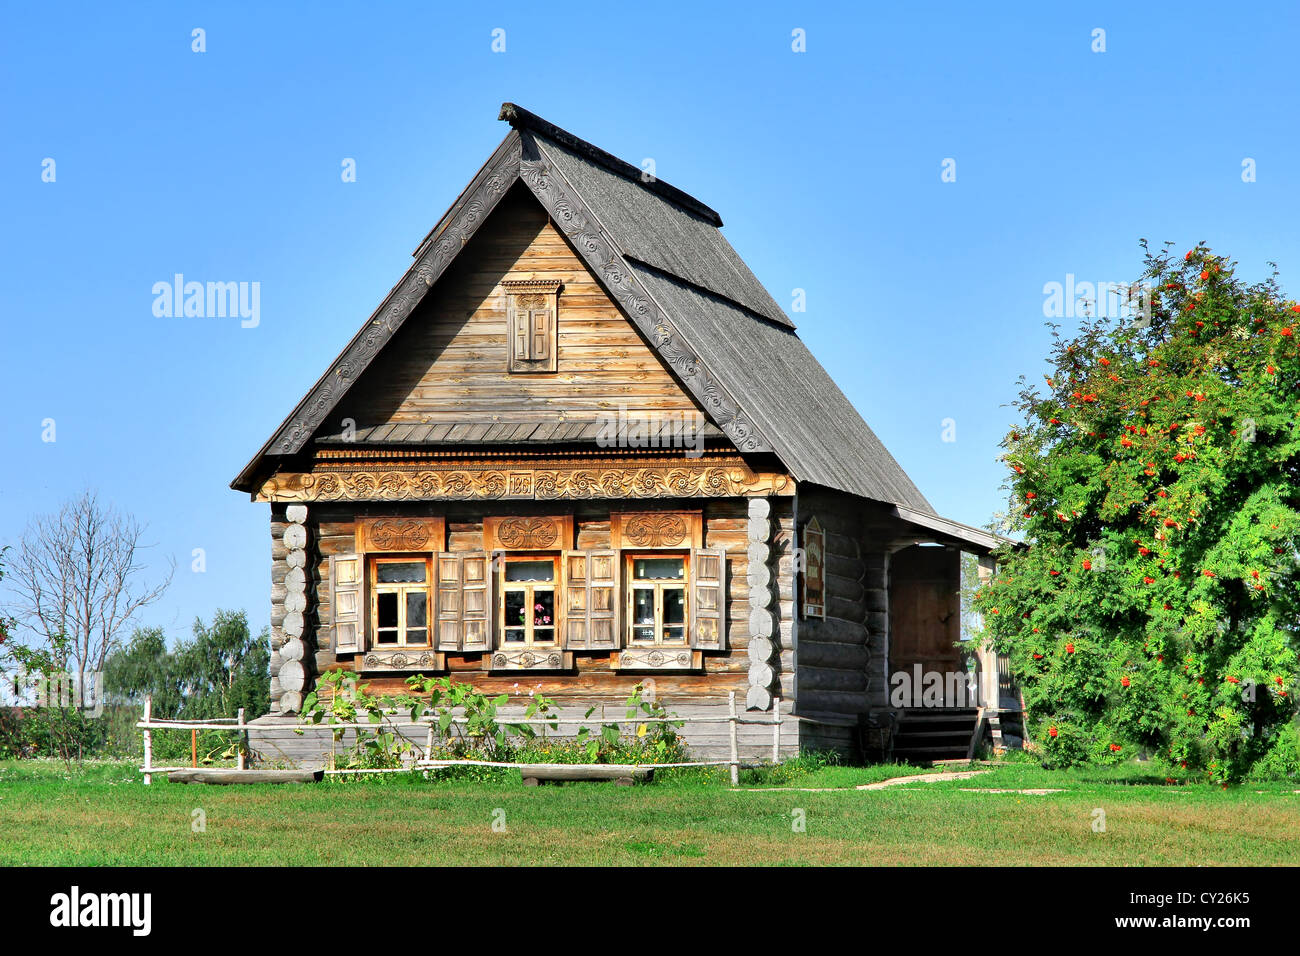 Russian national wooden house izba - Stock Image